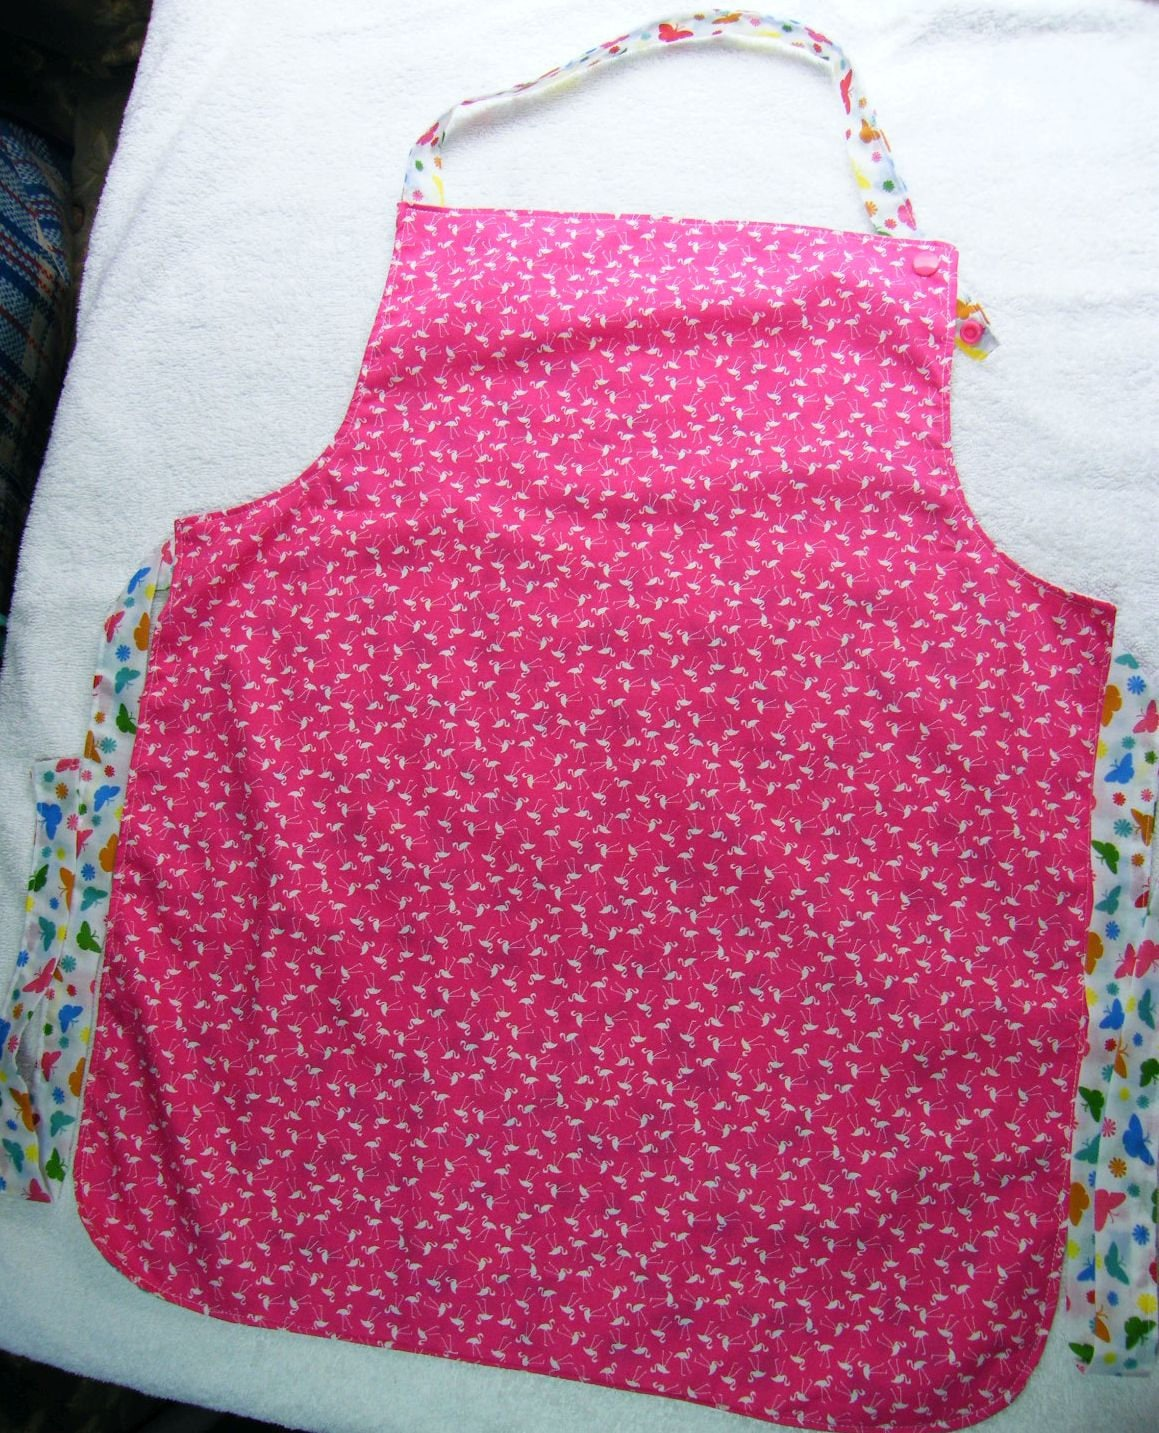 Girls Reversible Apron Age 7  10 years Baking or Cooking Apron Gardening Apron Craft Apron Fully Reversible Adjustable Apron.